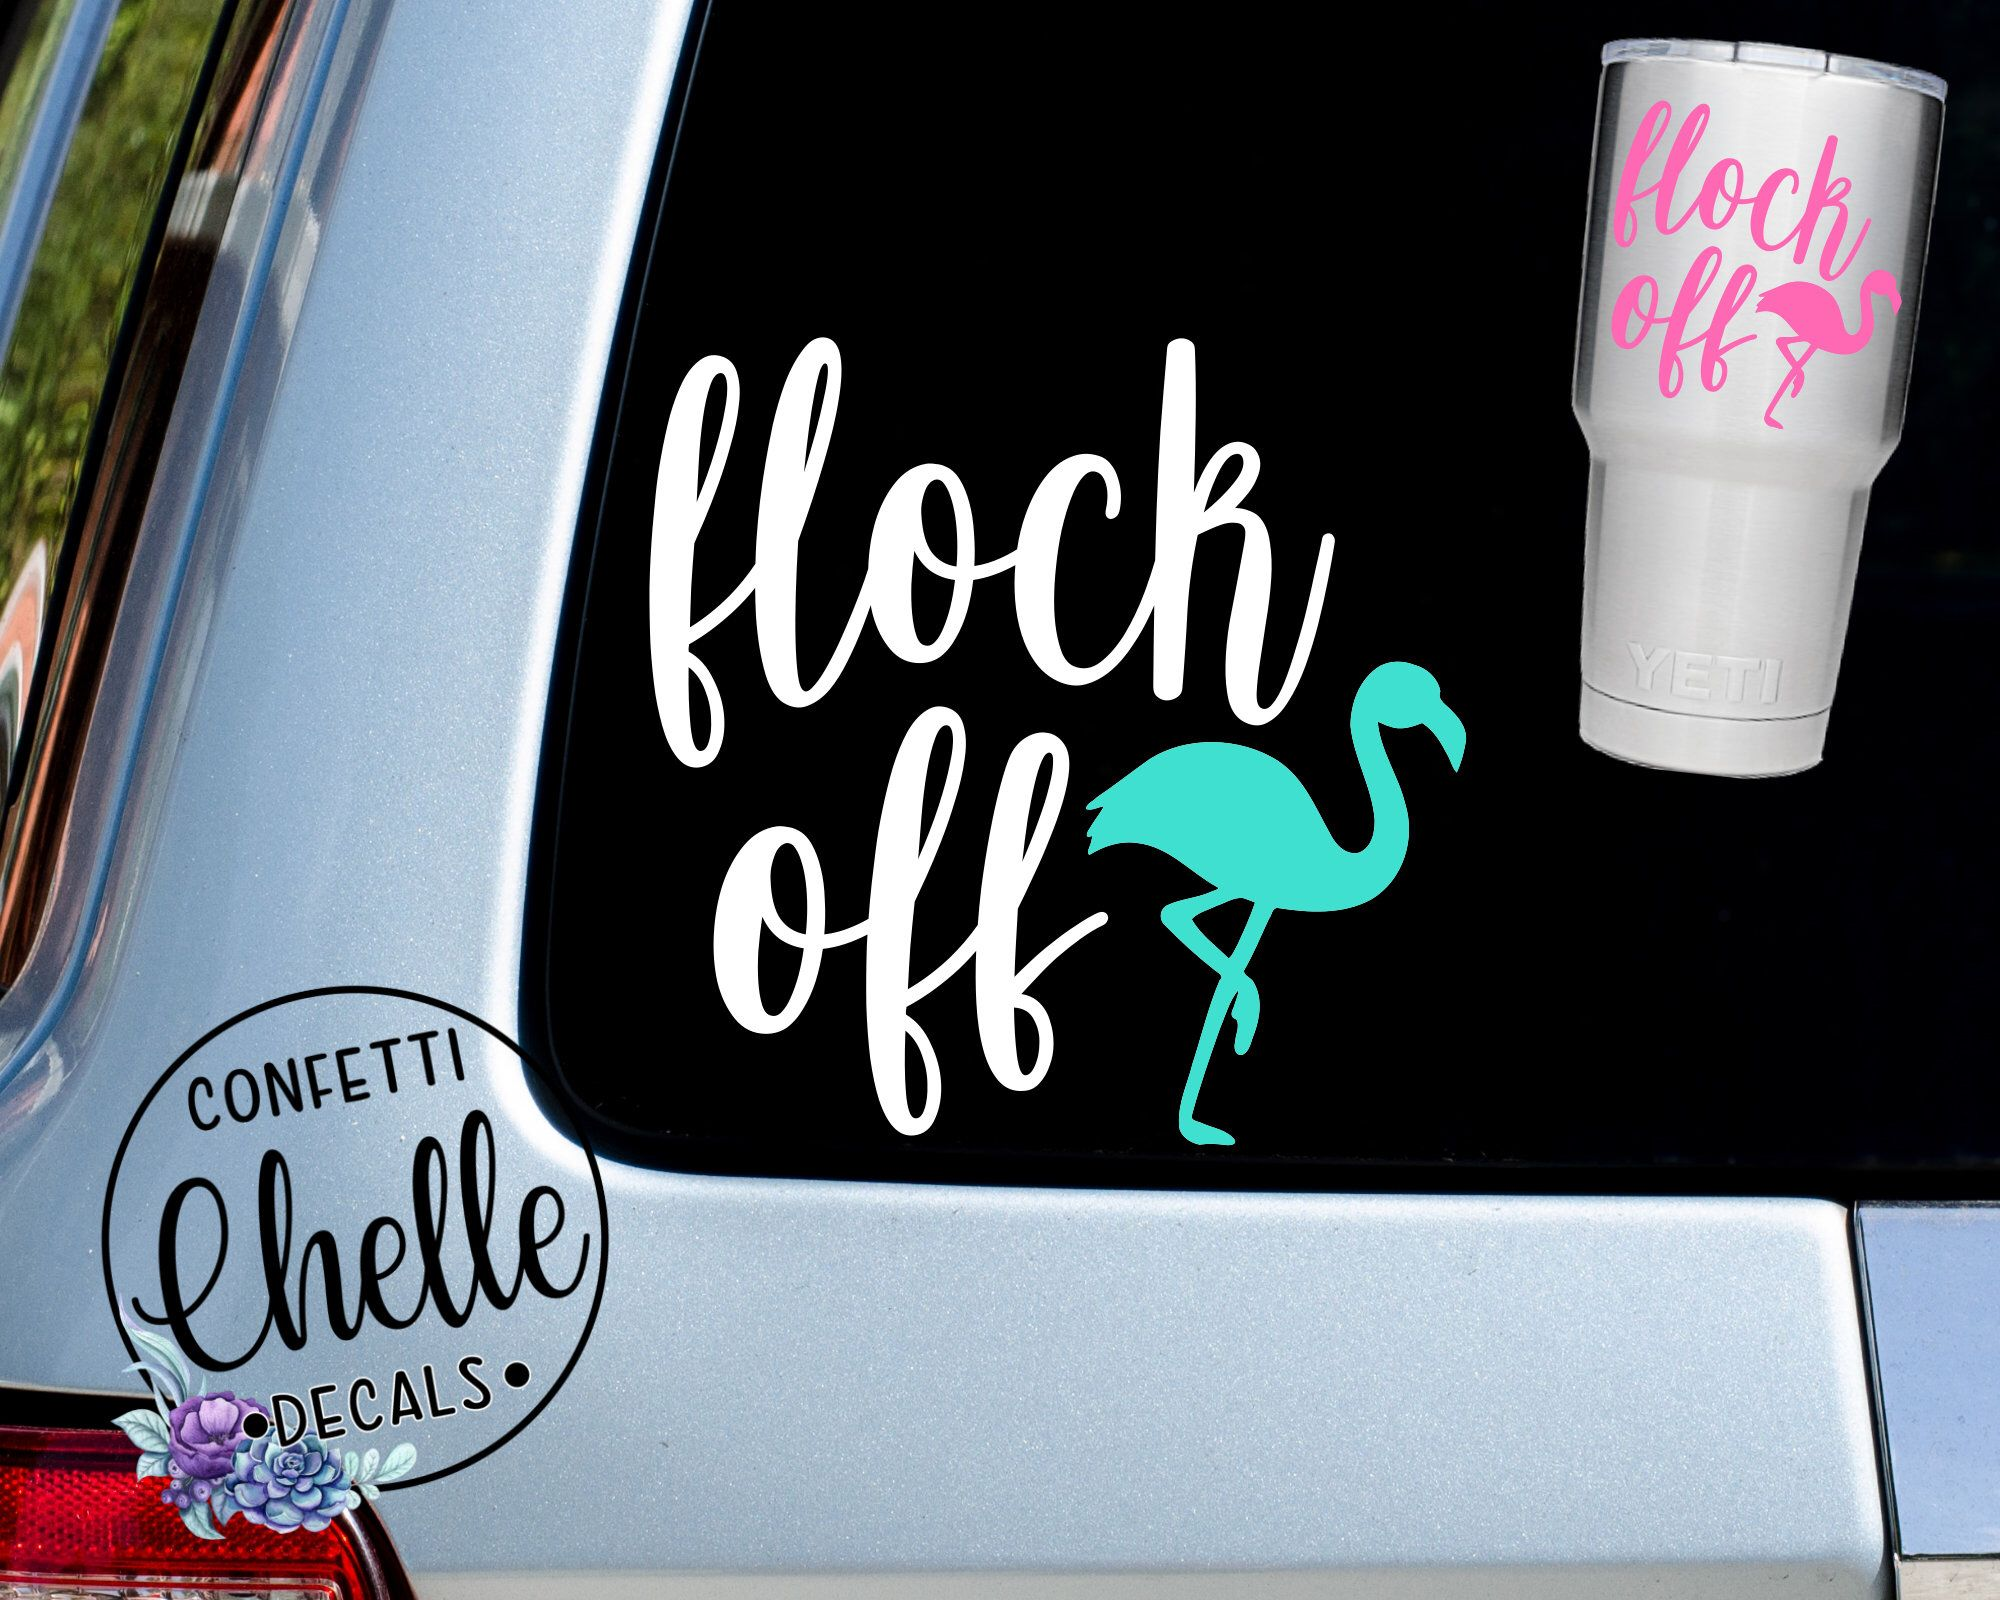 Excited To Share This Item From My Etsy Shop Flock Off Decal Flock Off Sticker Flamingo Decal Flamingo Decal Confetti Decals Monogram Decal [ 1600 x 2000 Pixel ]